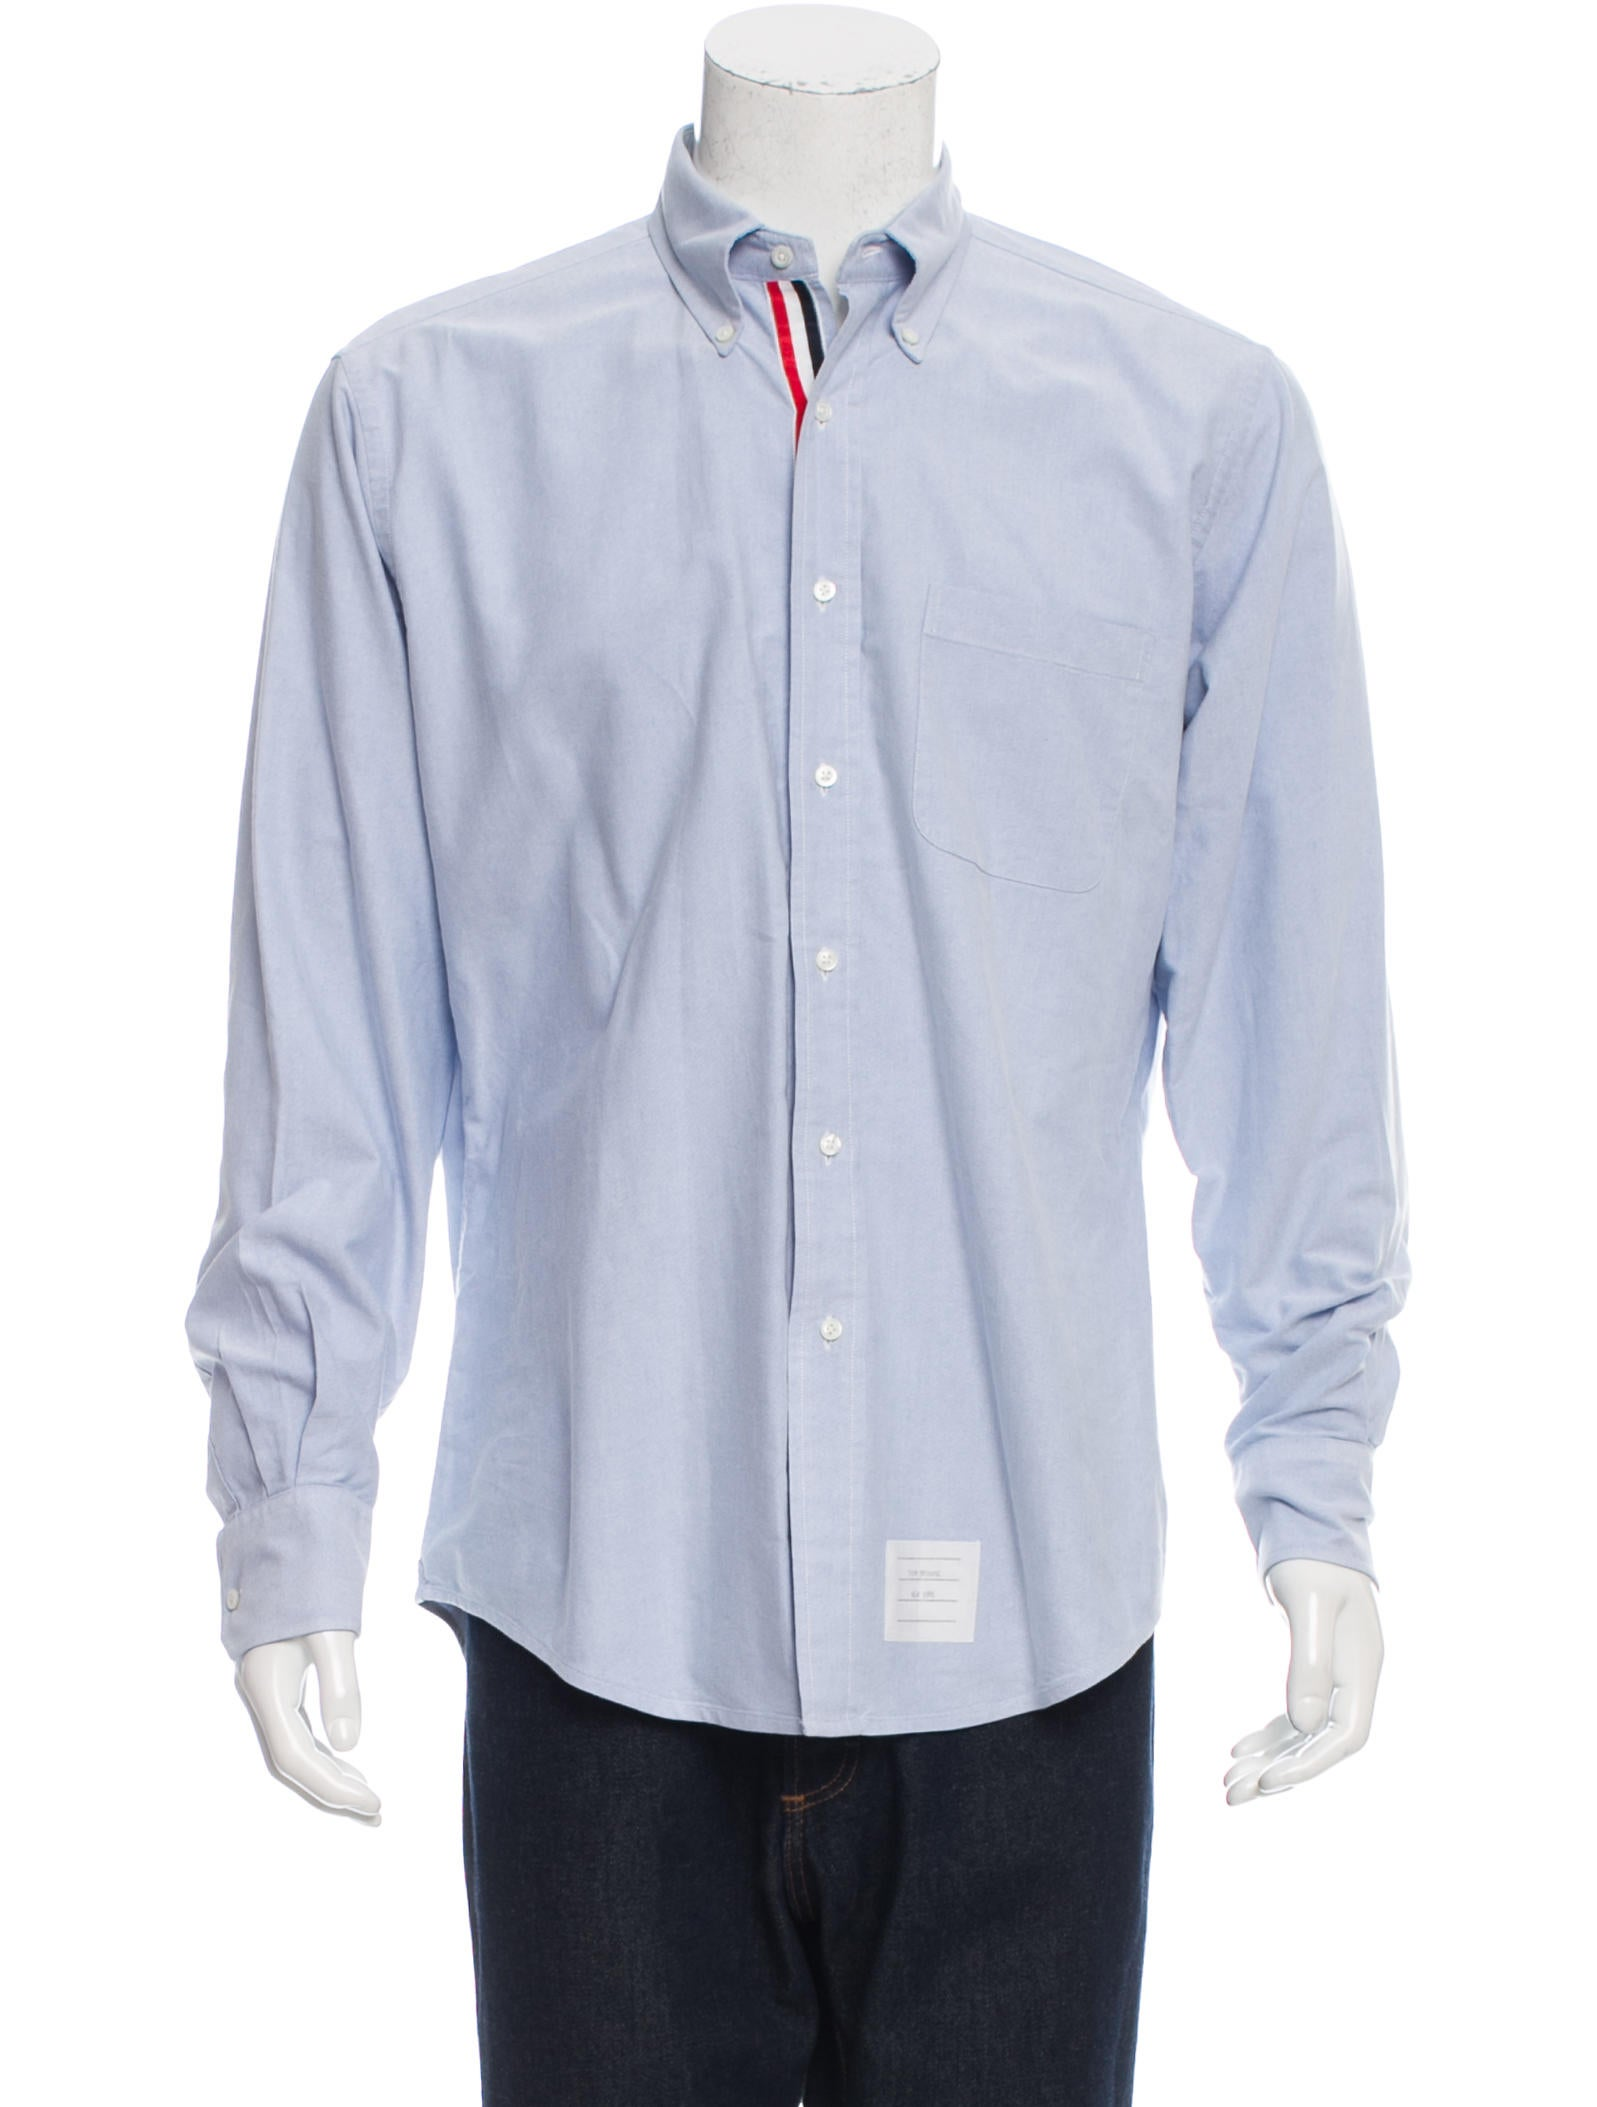 Thom browne woven button up shirt clothing tho21721 for Thom browne shirt sale